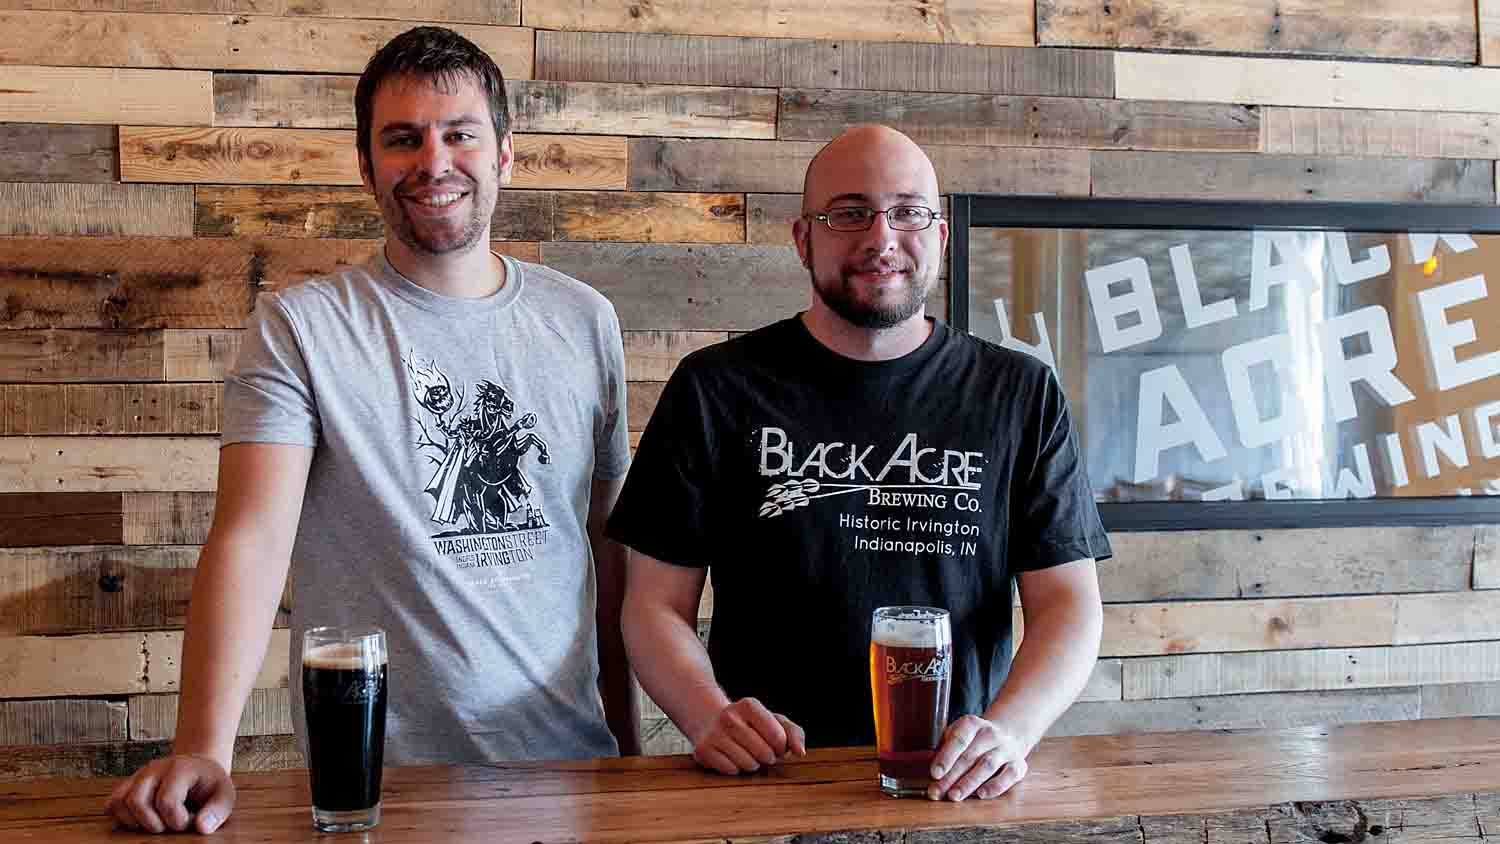 Black acre brewery 5